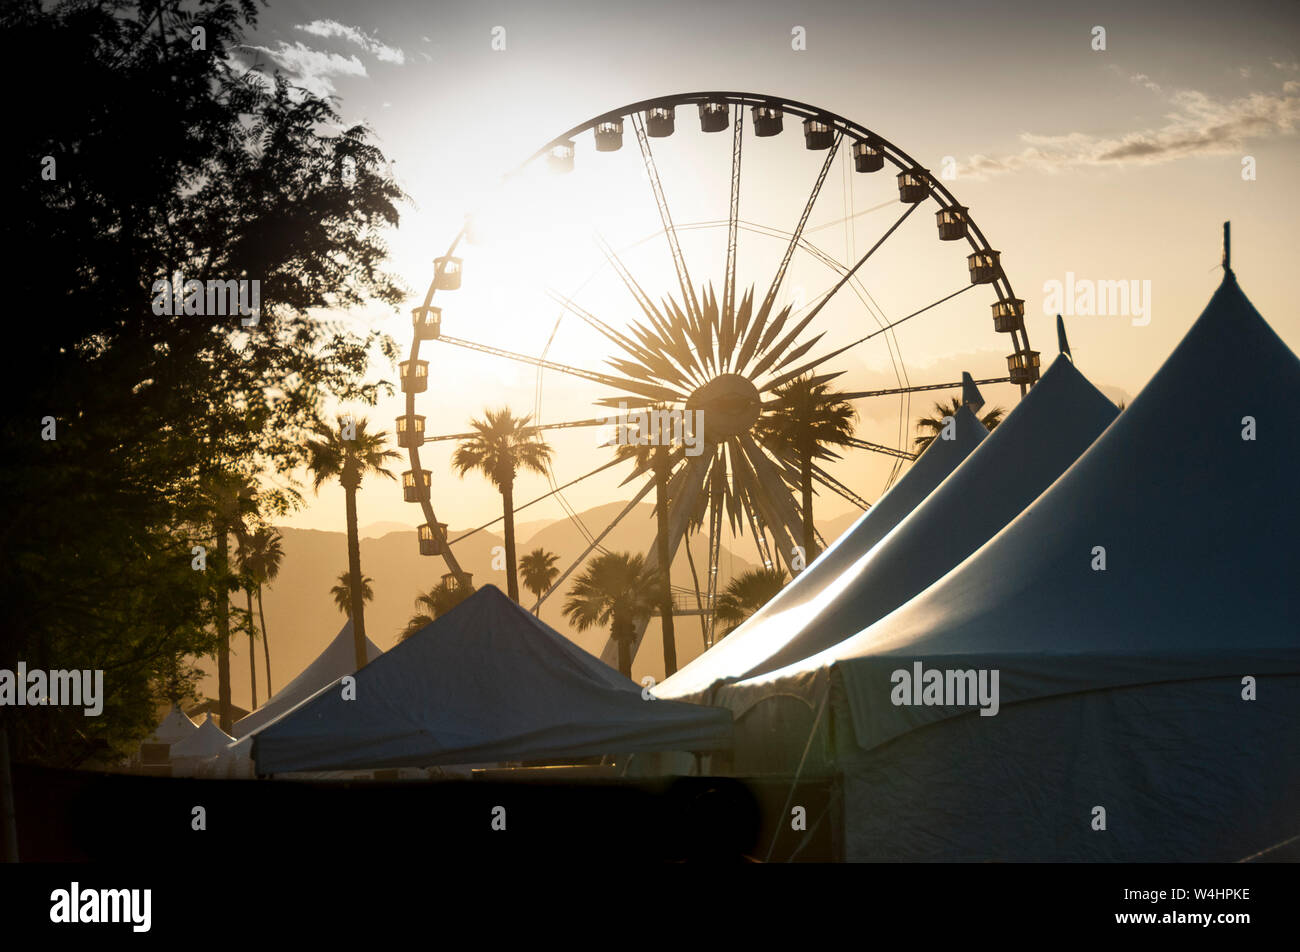 Silhouette Of Iconic Ferris Wheel And Tents At Coachella Music Festival Stock Photo Alamy